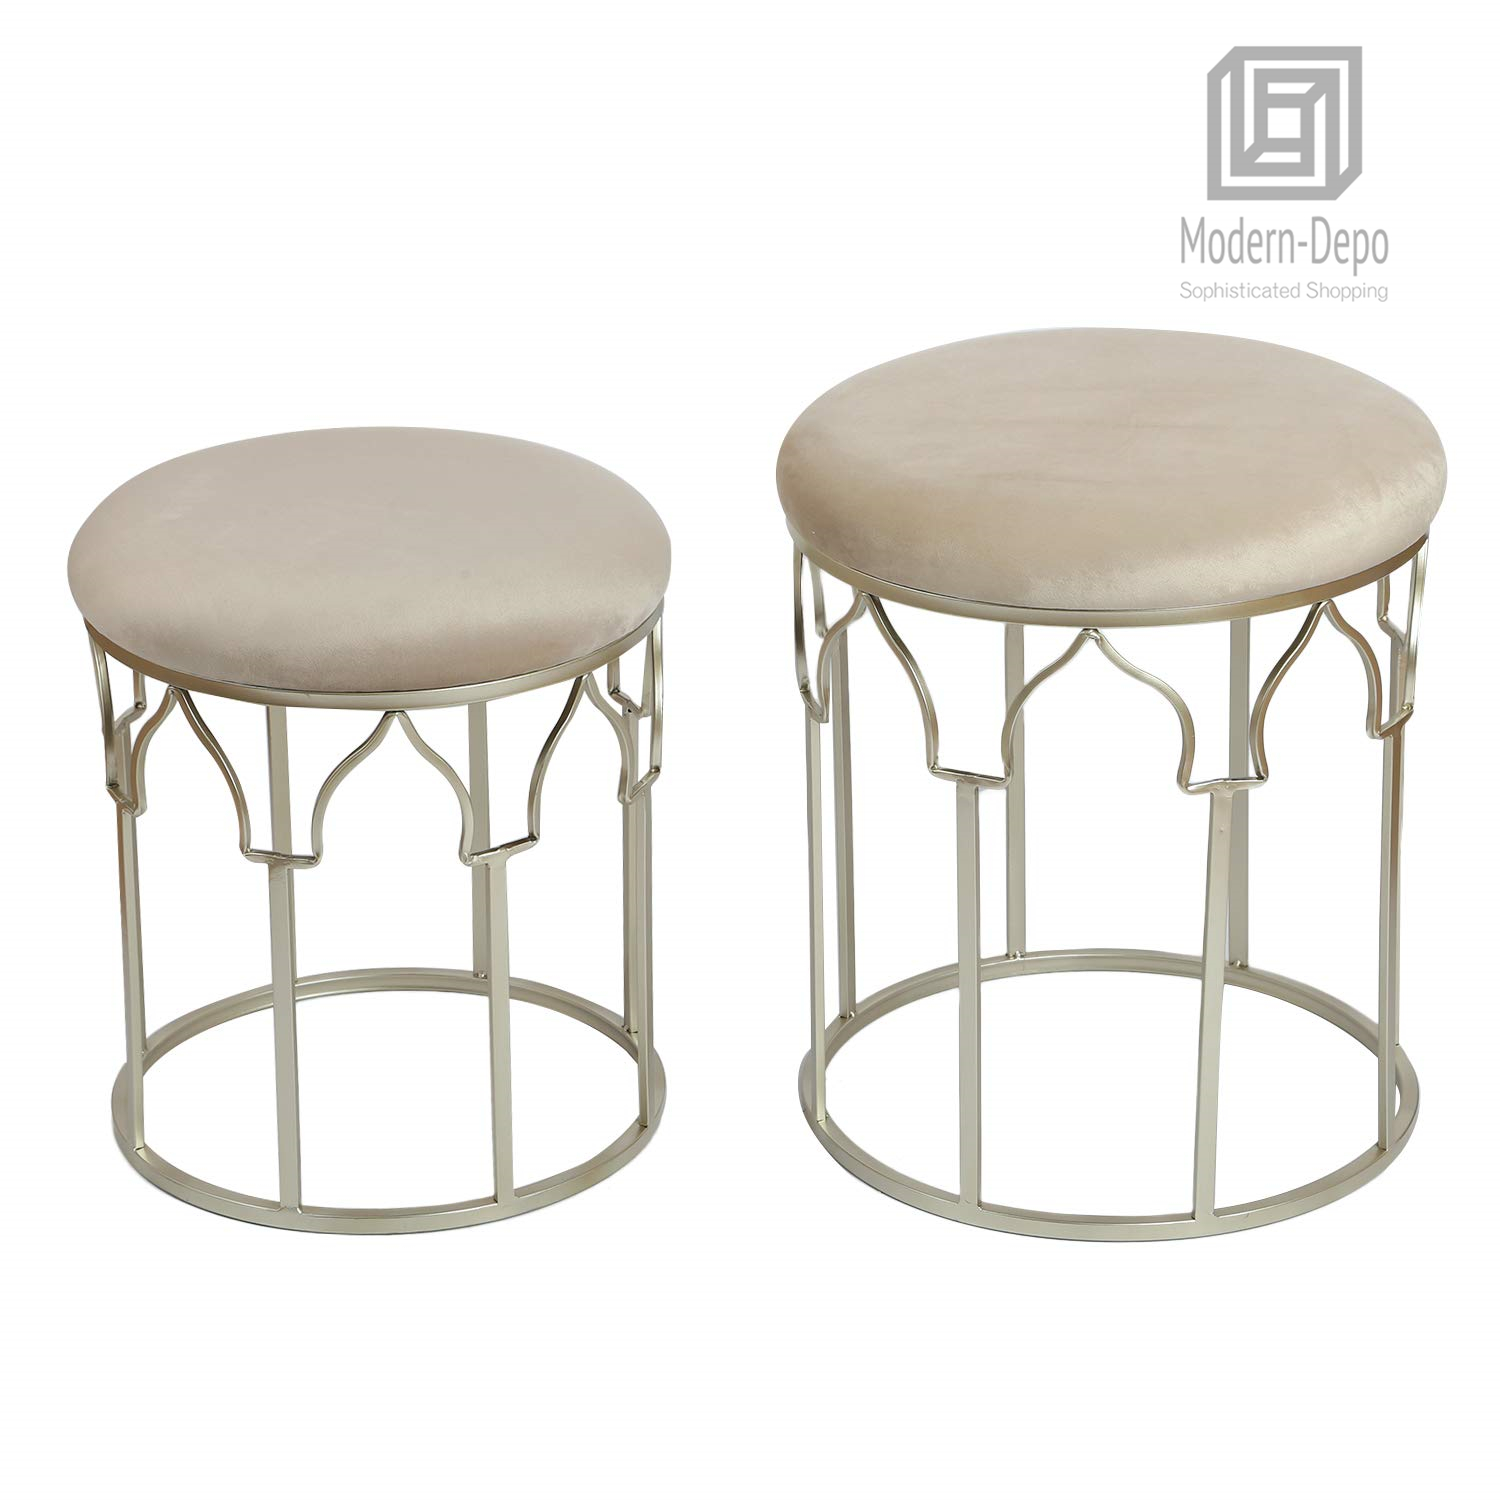 Surprising Details About Round Ottoman Upholstered Foot Rest Stool For Living Room Metal Frame Stackable Machost Co Dining Chair Design Ideas Machostcouk